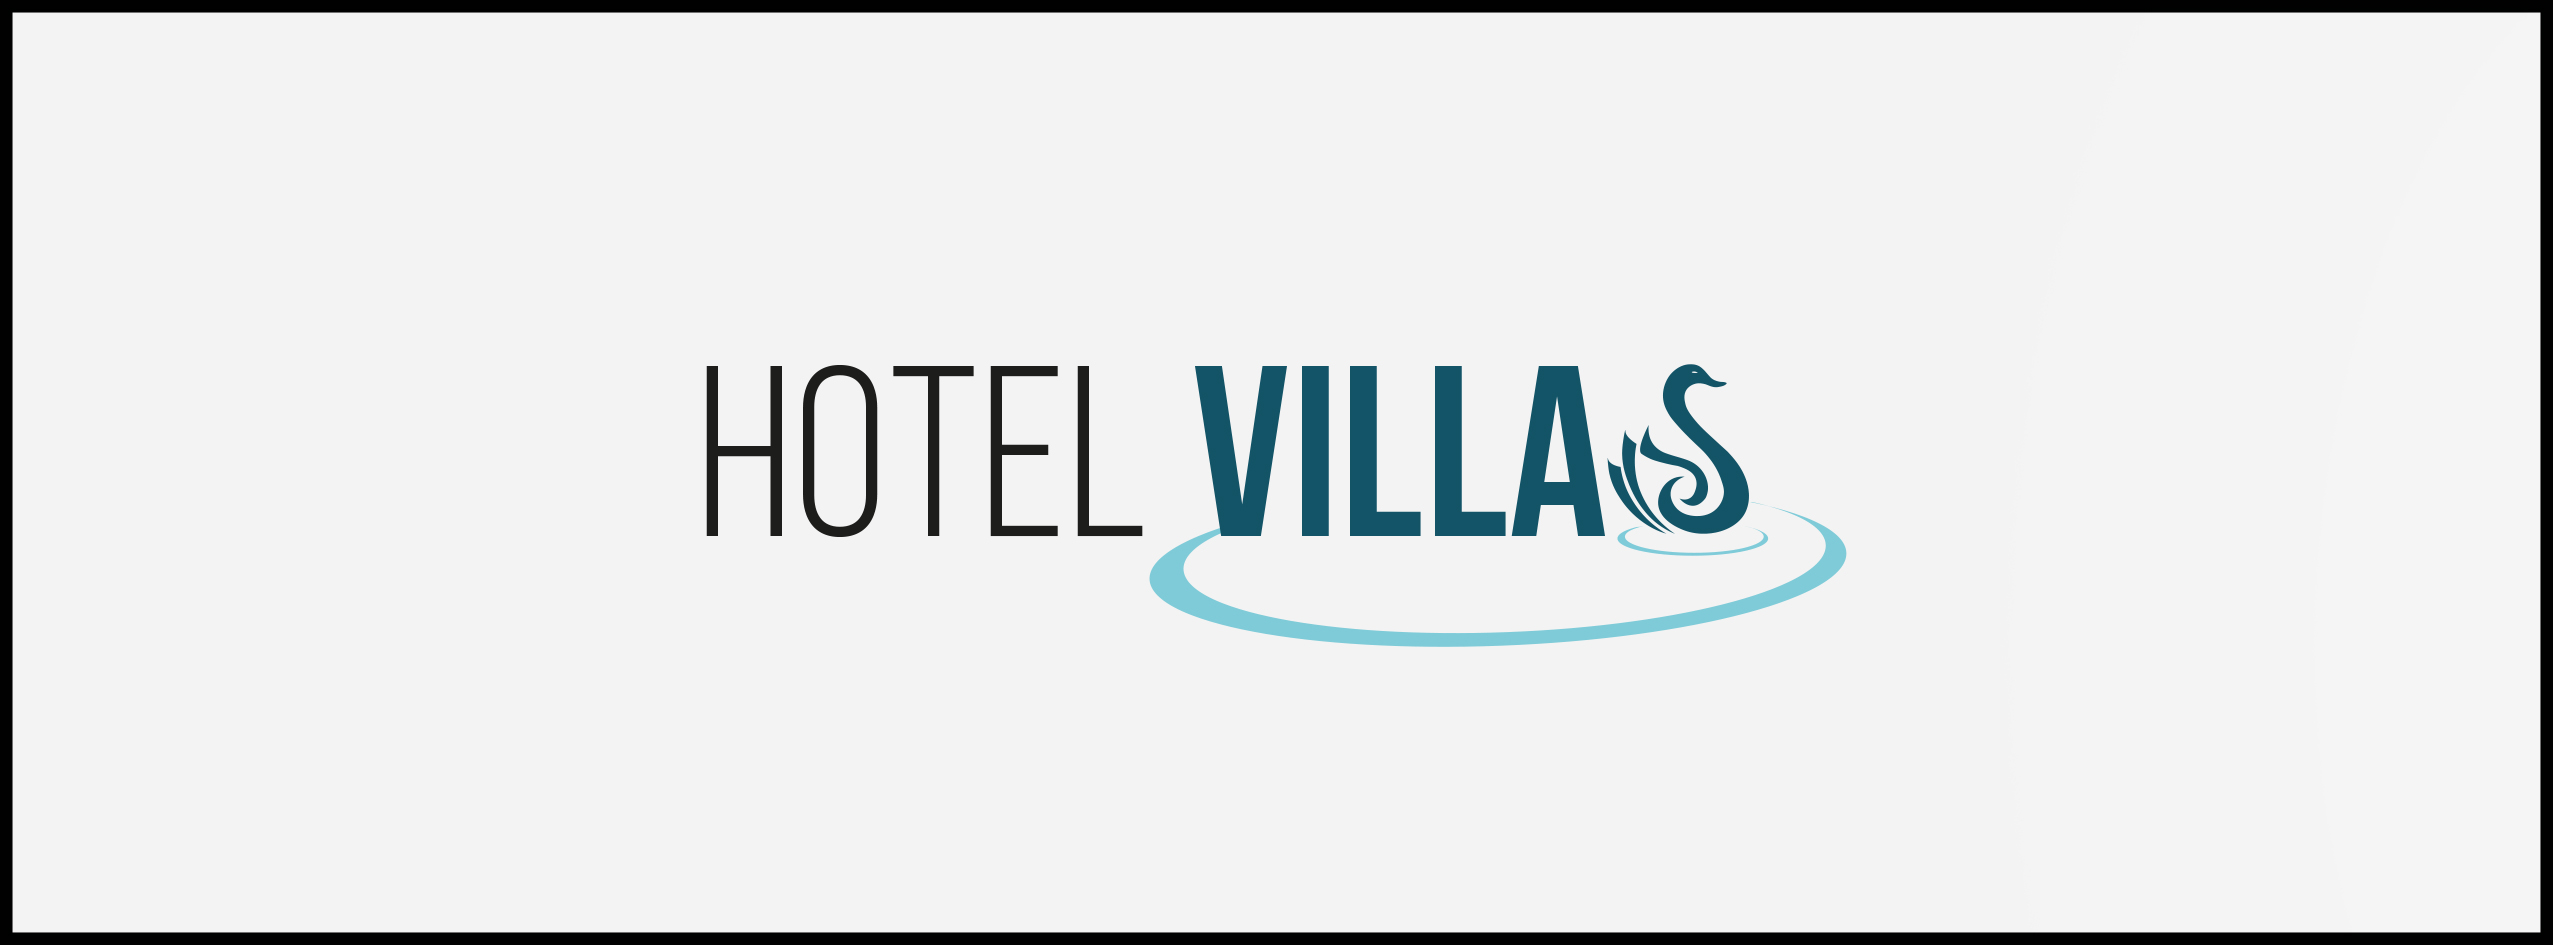 HOTELVİLLAS logo-3 BLACK